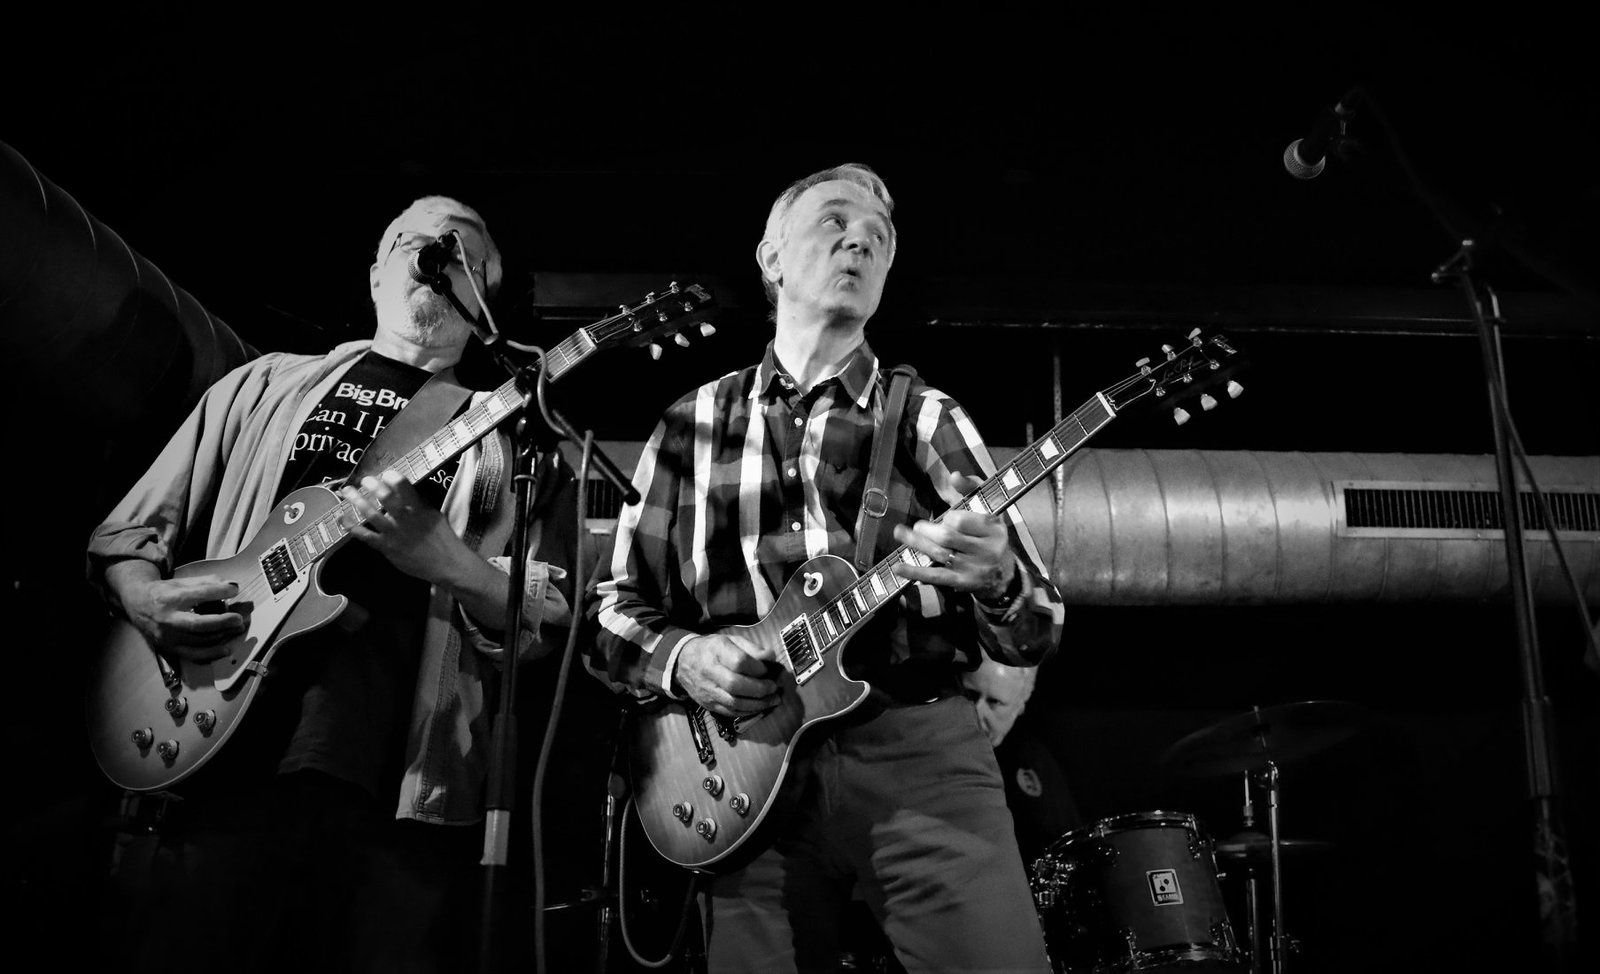 ▶ Photos - WOODSTOCK 50 ans - Travelin'Band ( Creedence Clearwater Revival tribute band ) @ Rock Classic - 15/11/2019